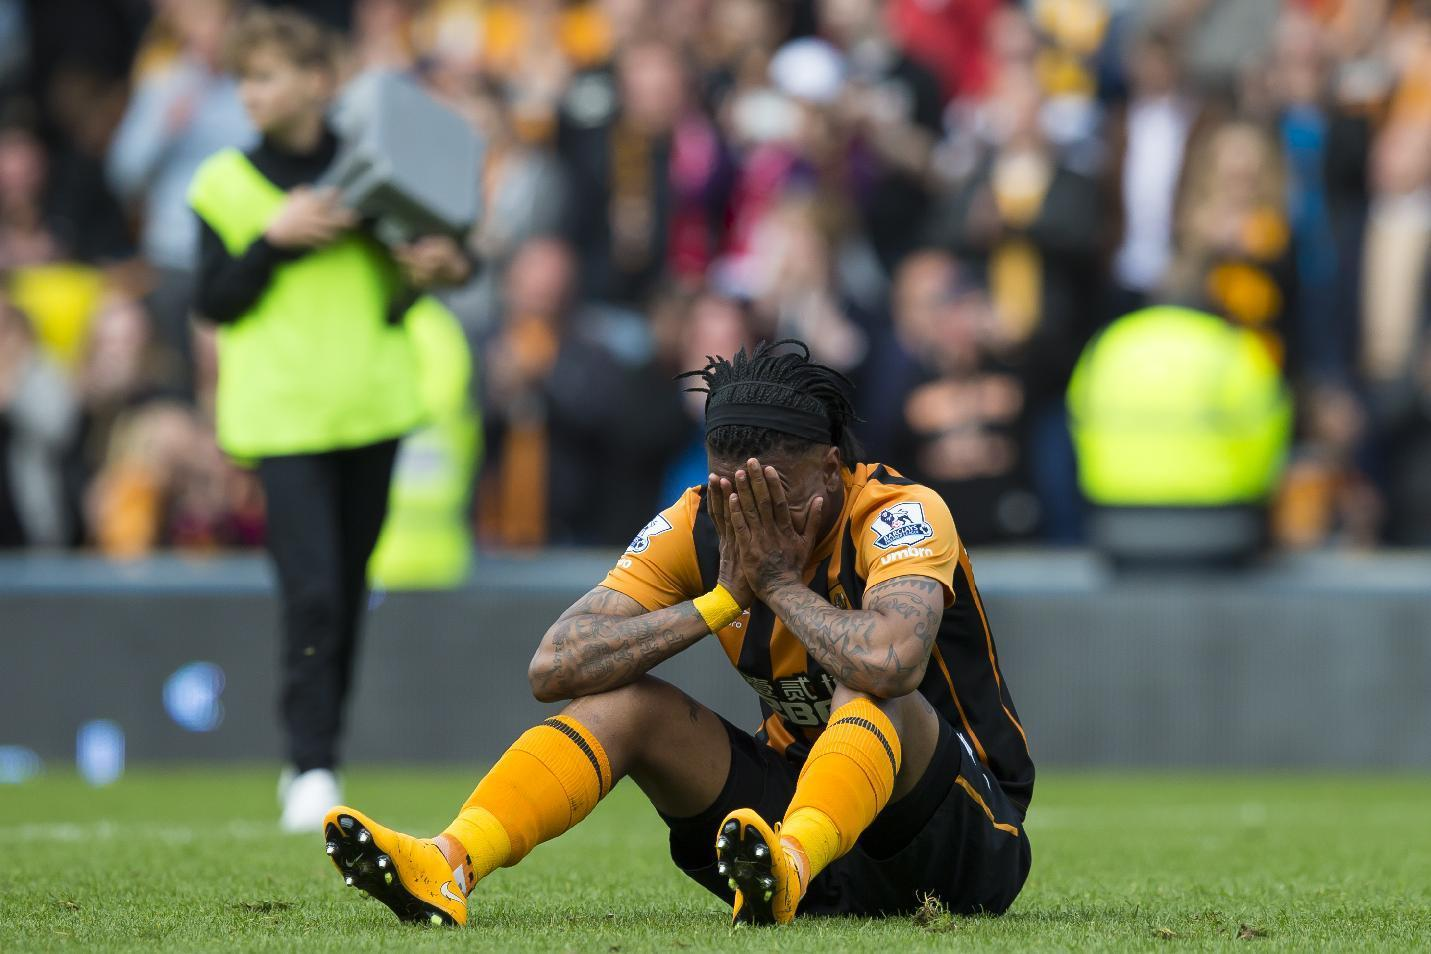 Hull relegated, Newcastle survives on final day of season